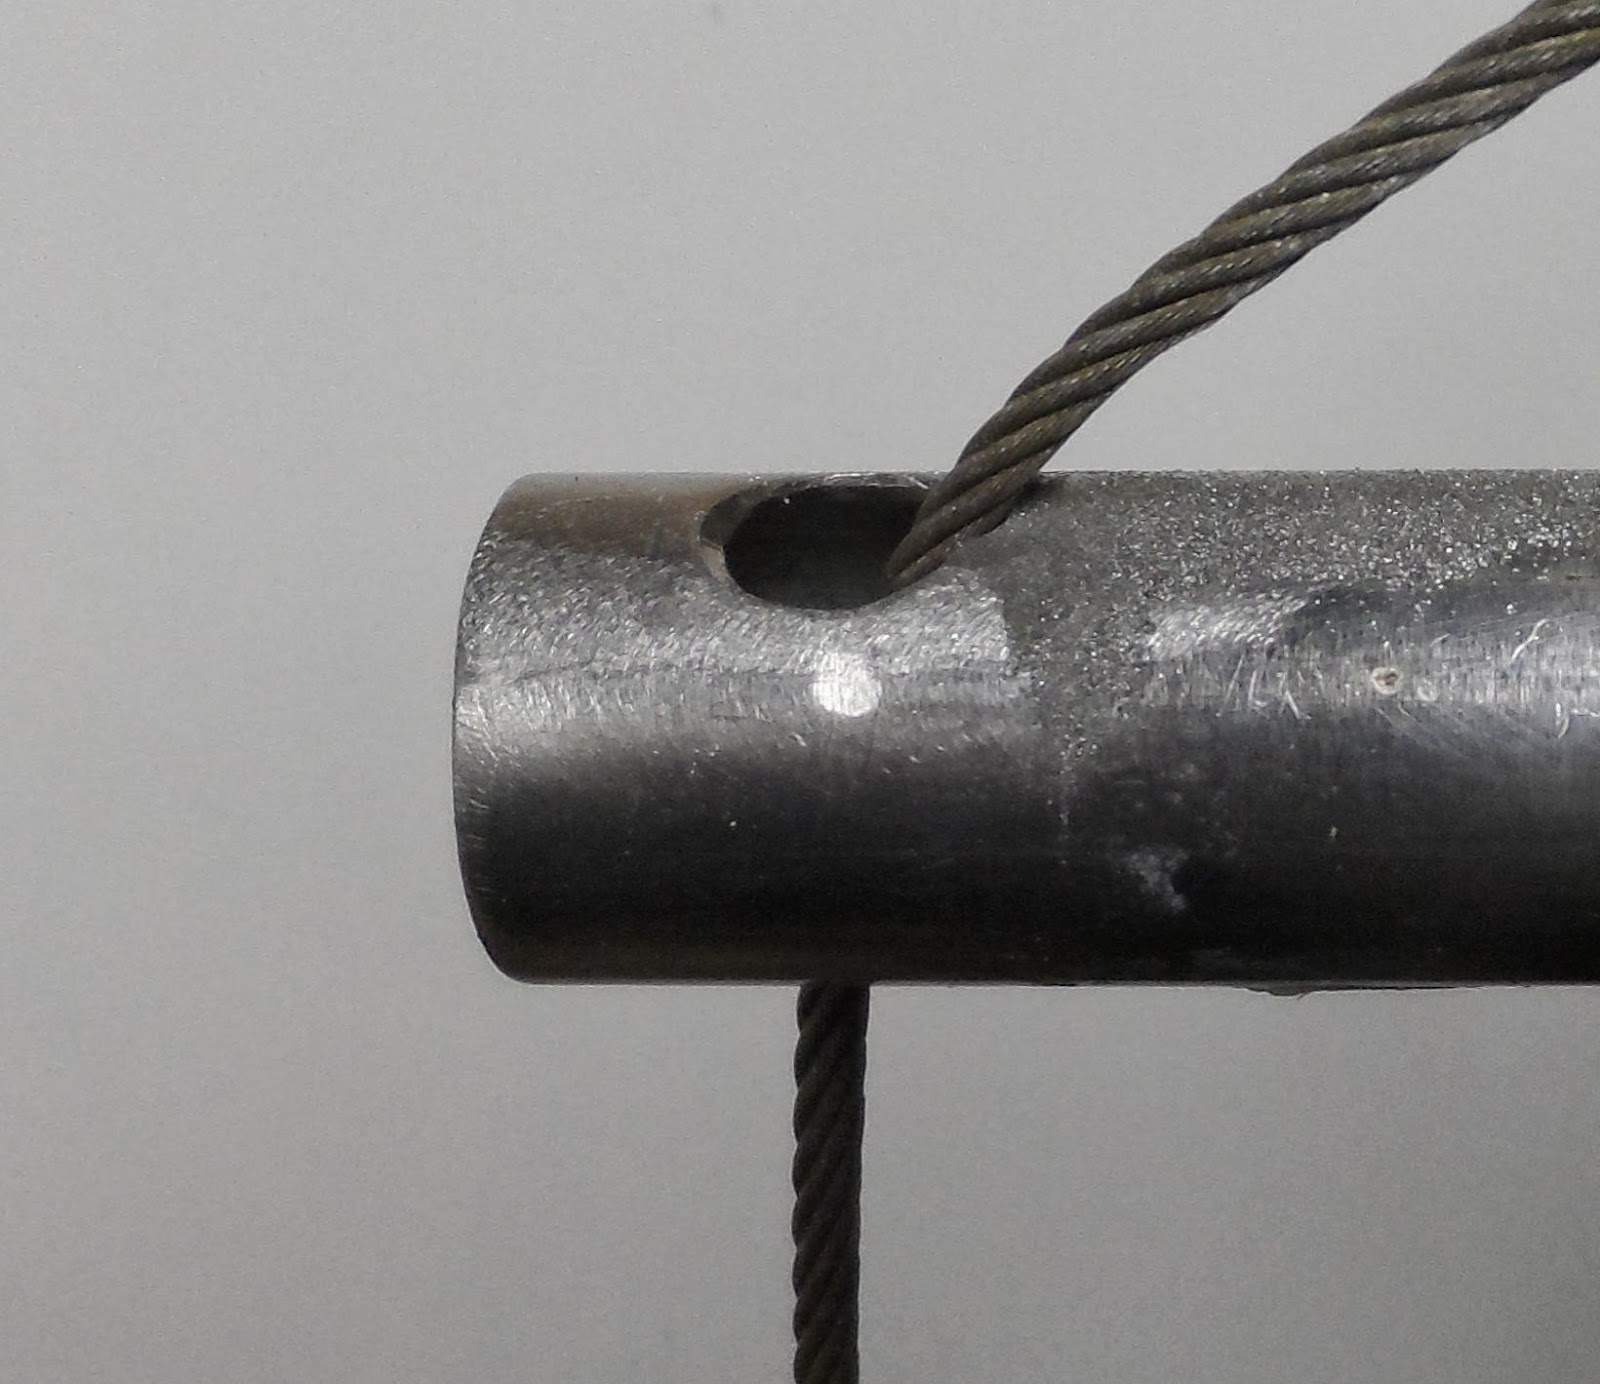 wire+vs+stanchion+003+low+res.jpg